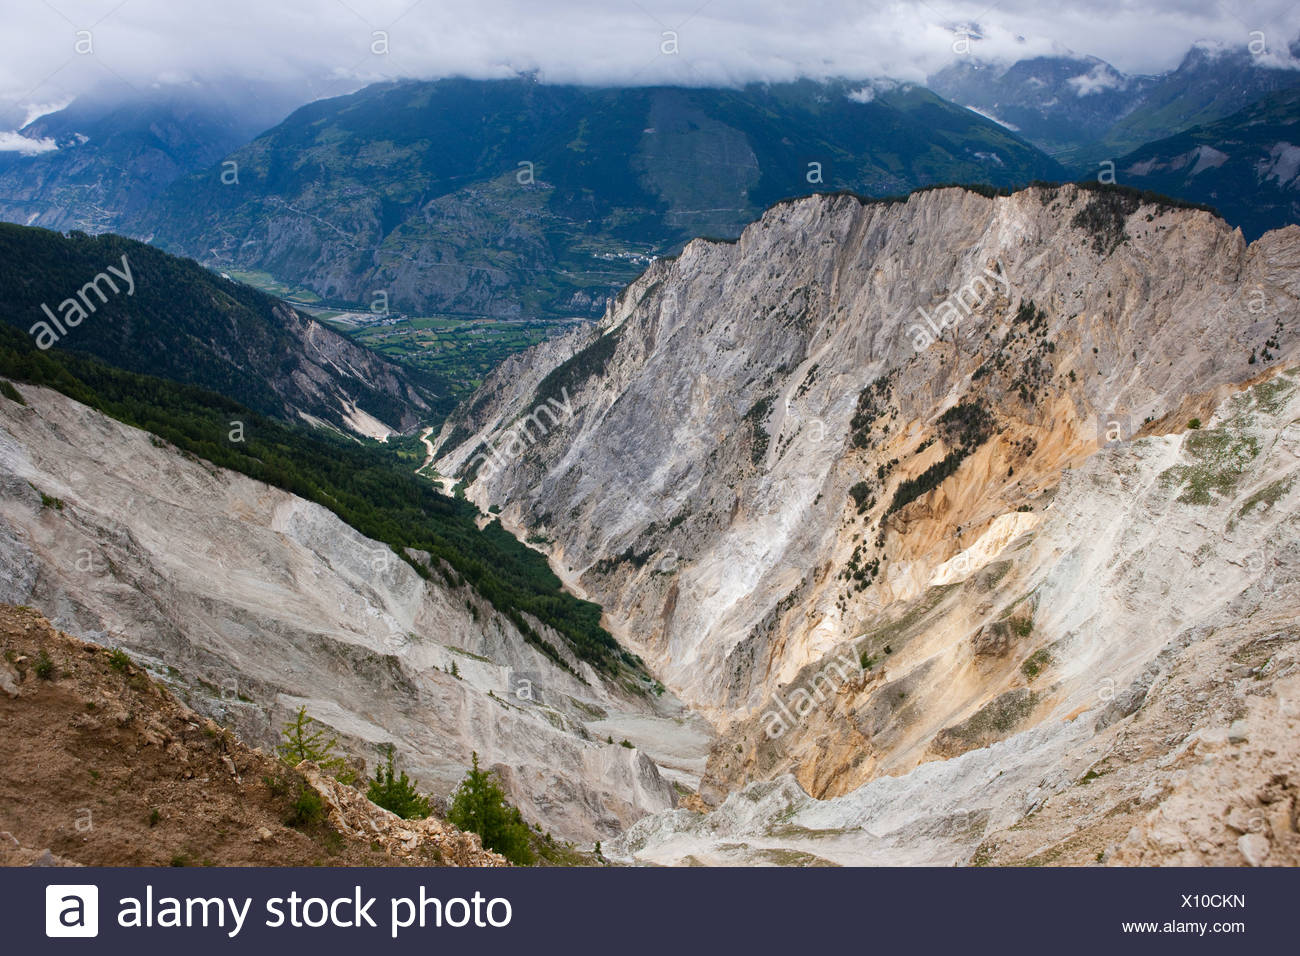 Ditch Ill, Rhone valley, cliff, rocks, cliffs, stone, mountains, gulch, canyon, canton, Valais, Switzerland, Europe, rubble wast - Stock Image